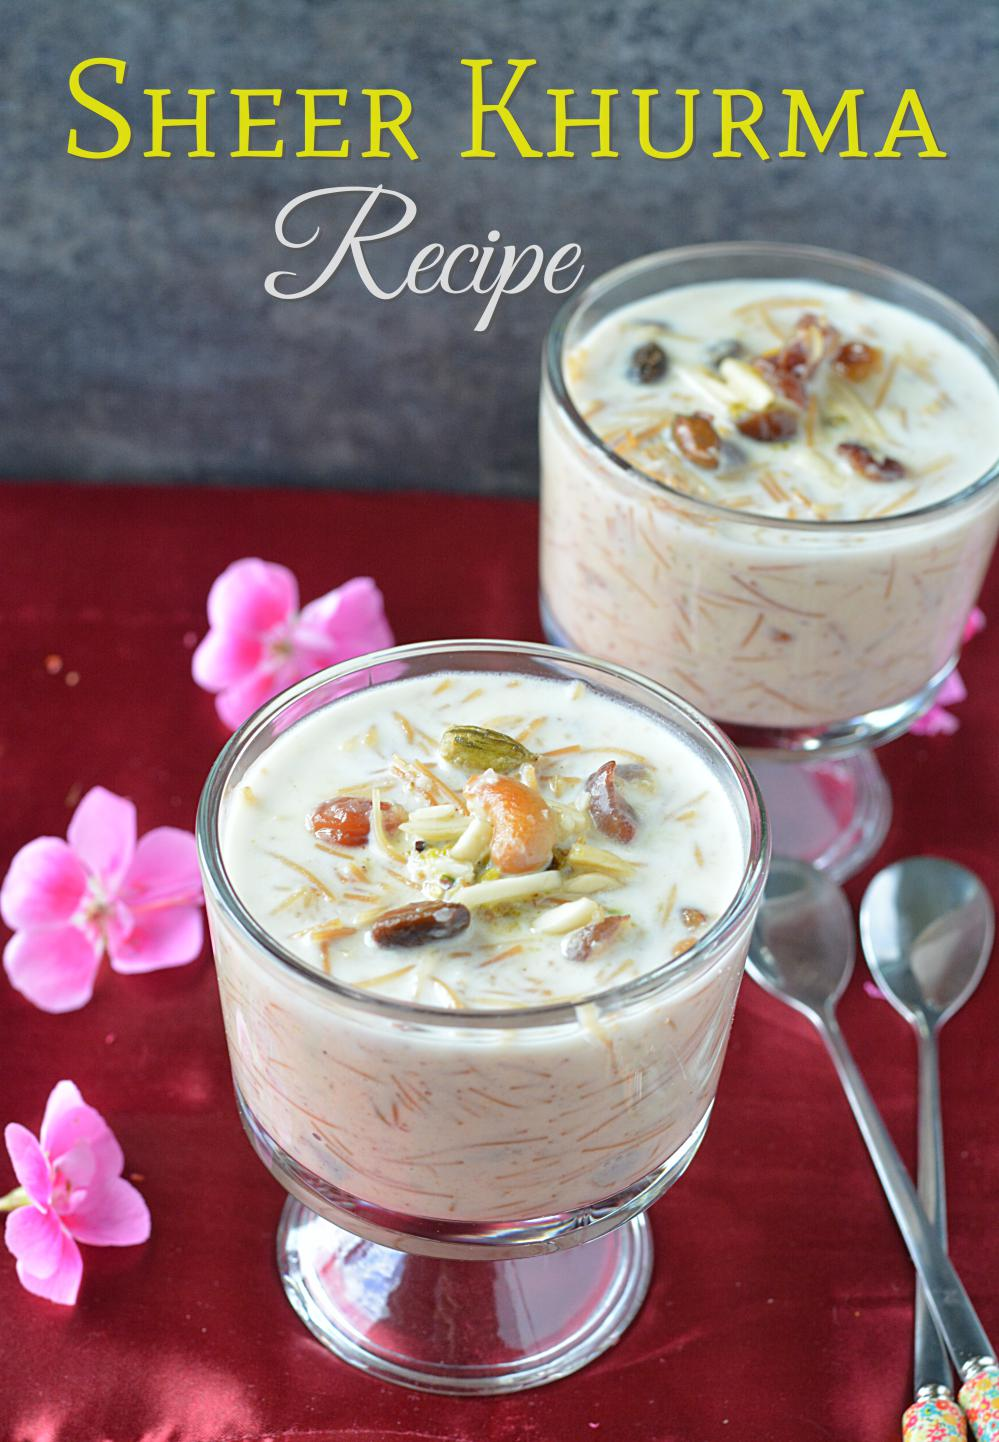 Sheer Khurma or Sheer korma recipe